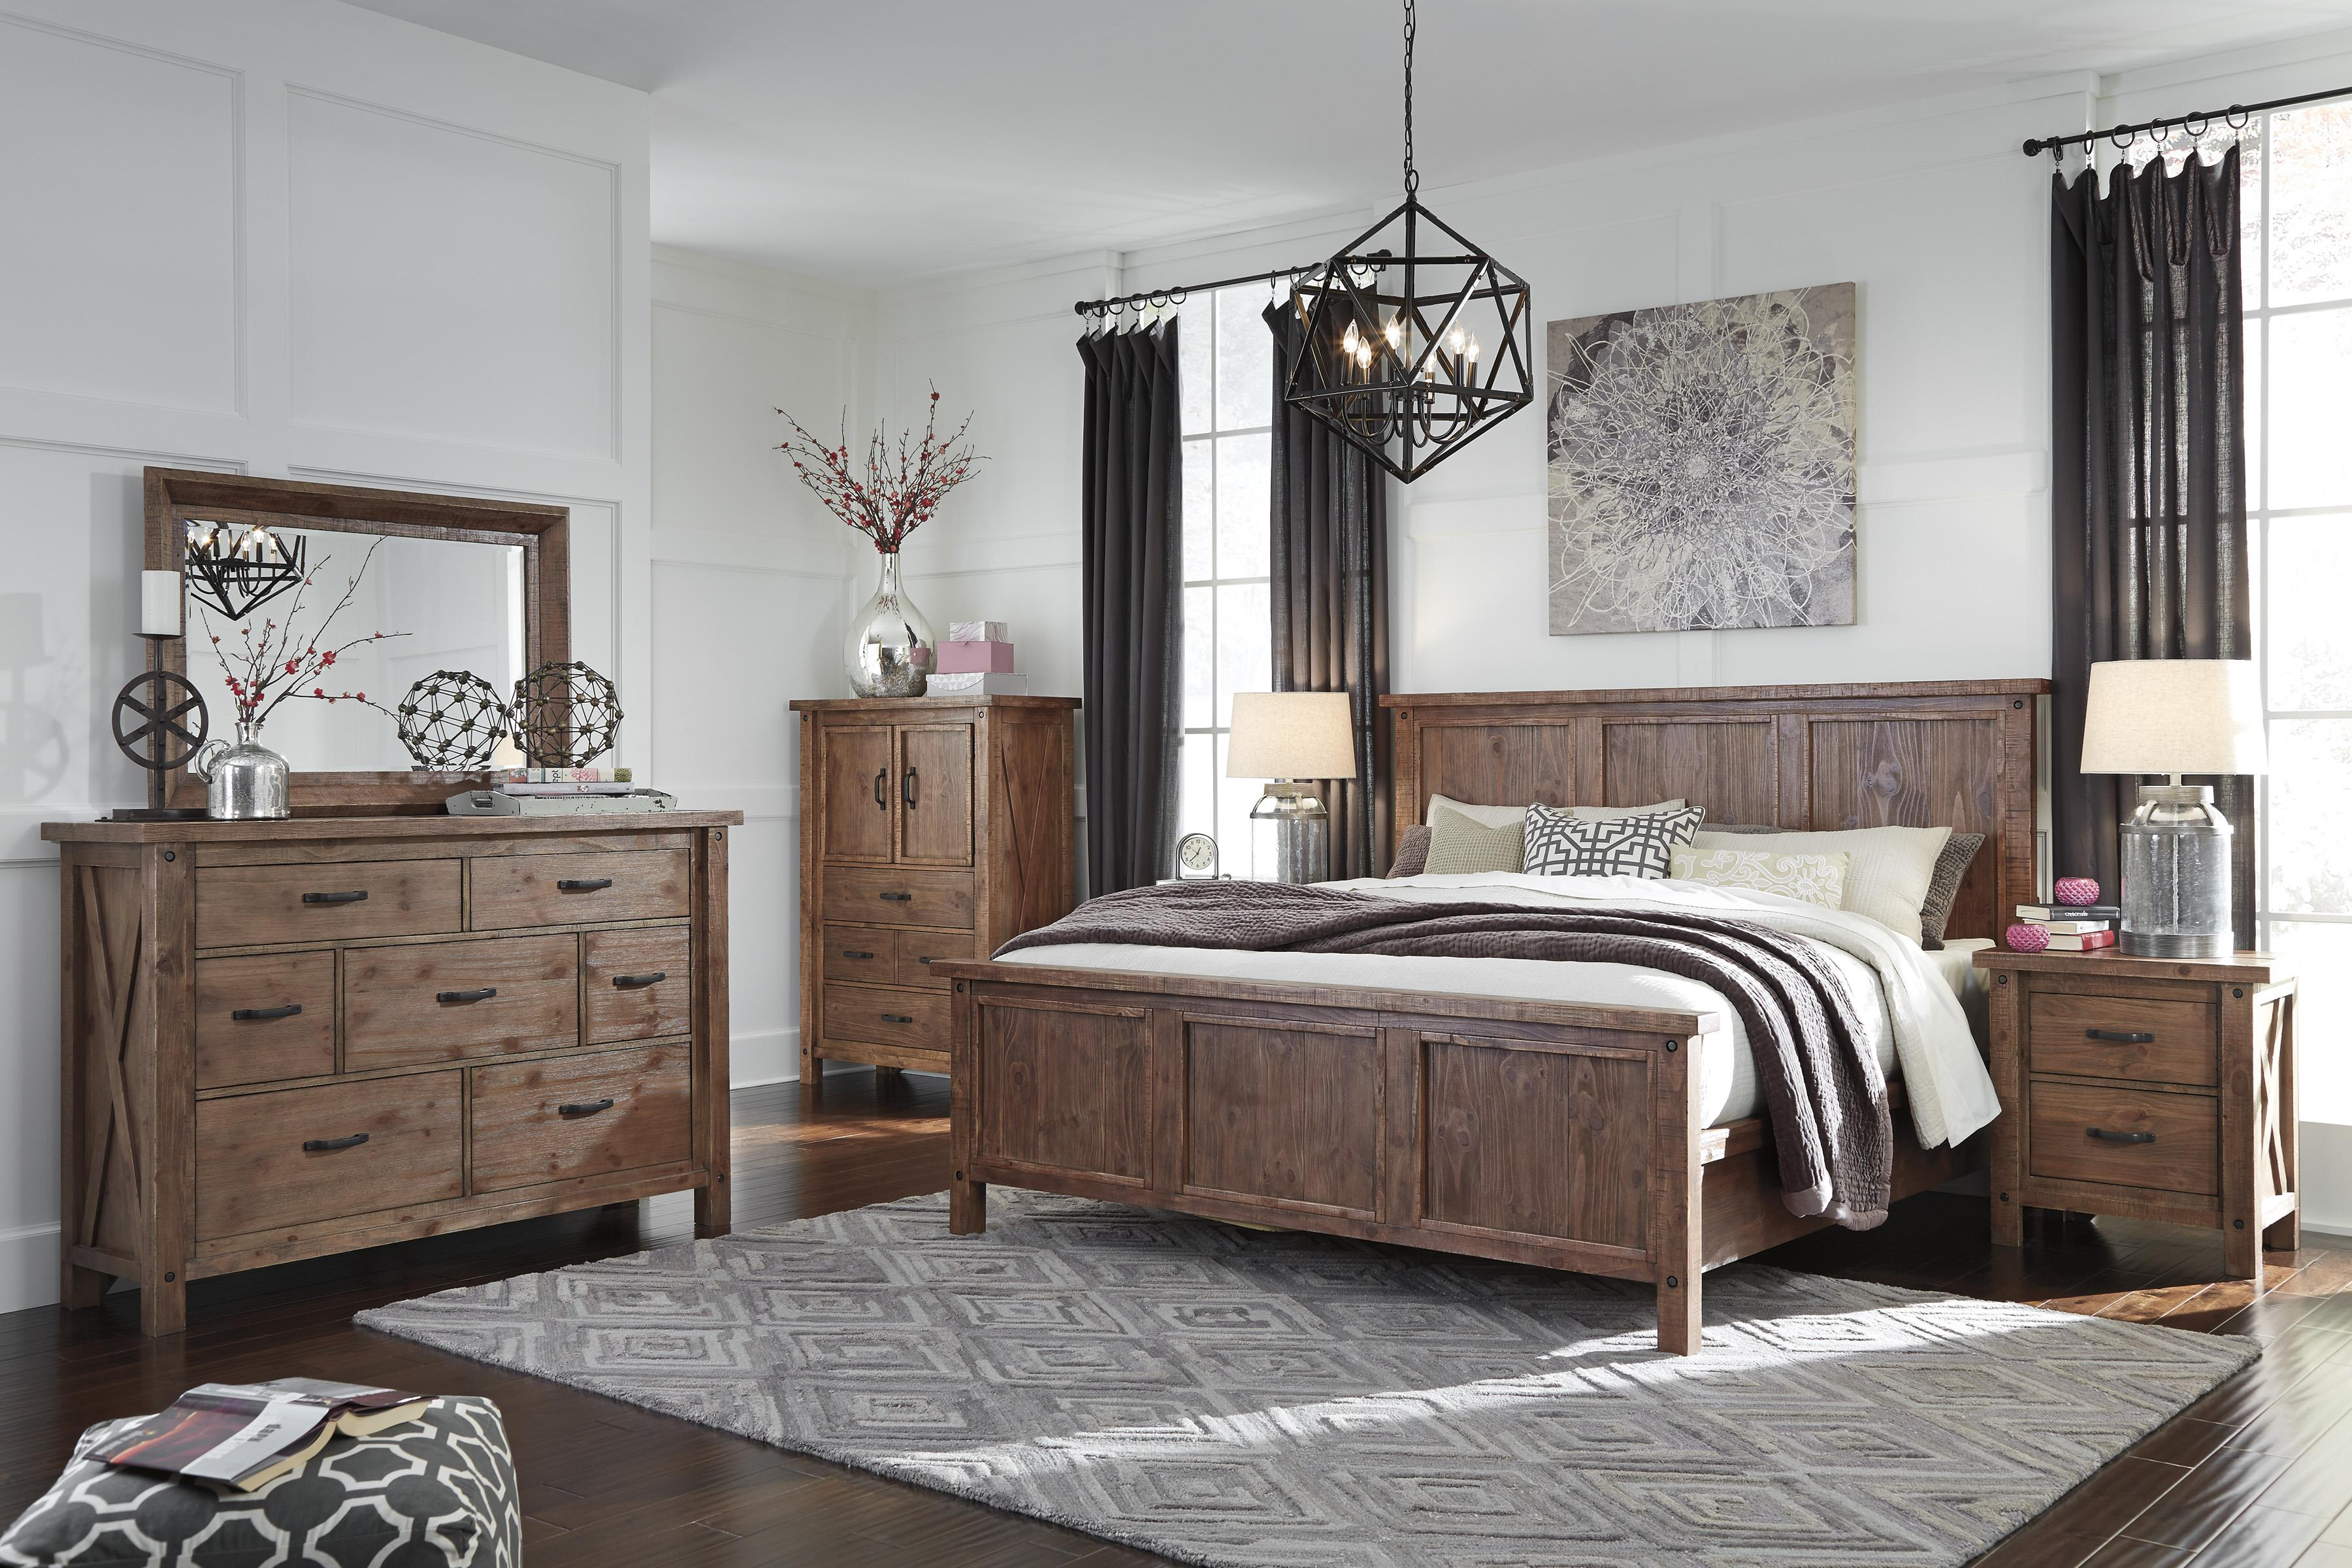 Signature Design by Ashley Tamilo California King Bedroom Group - Item Number: B714 CK Bedroom Group 1